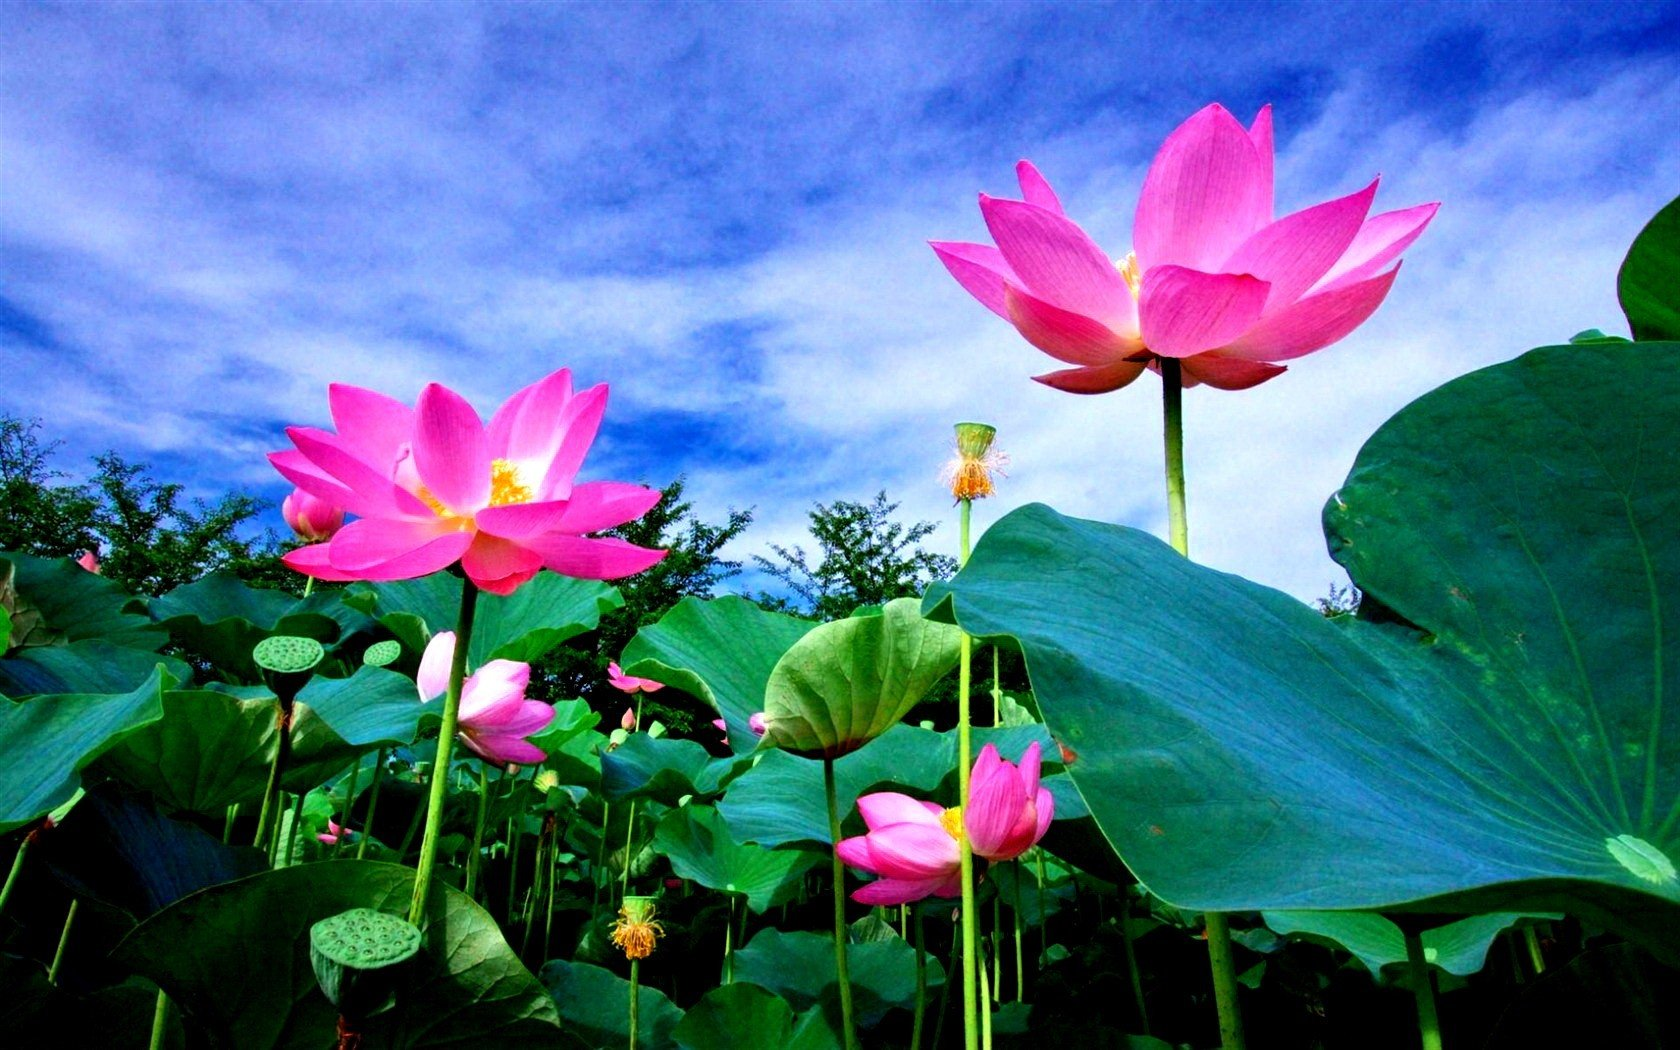 Lotus flower meaning and symbolism mythologian lotus flower in hinduism and the sacred lotus padma mightylinksfo